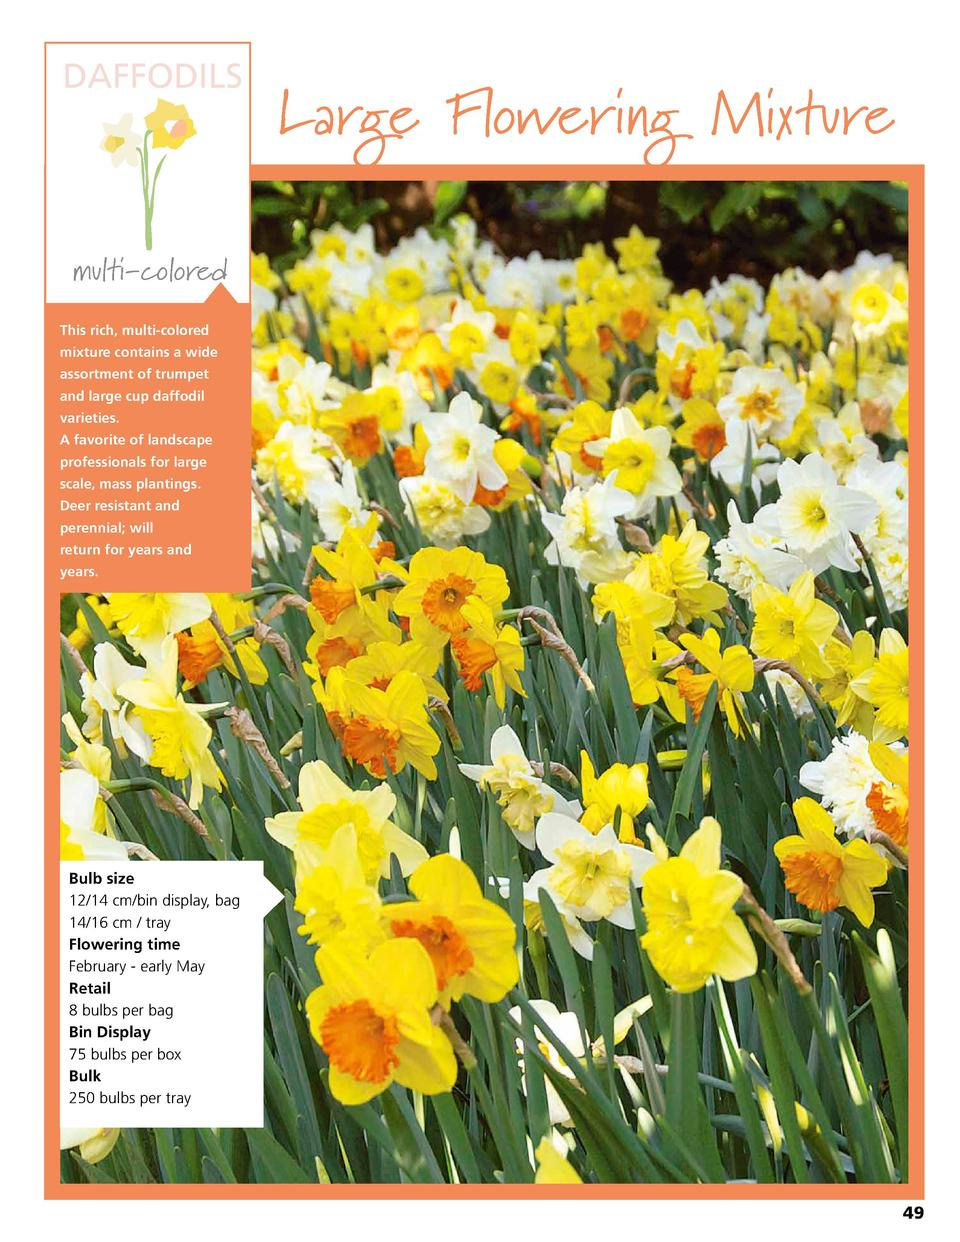 DAFFODILS  Large Flowering Mixture  multi-colored This rich, multi-colored mixture contains a wide assortment of trumpet a...